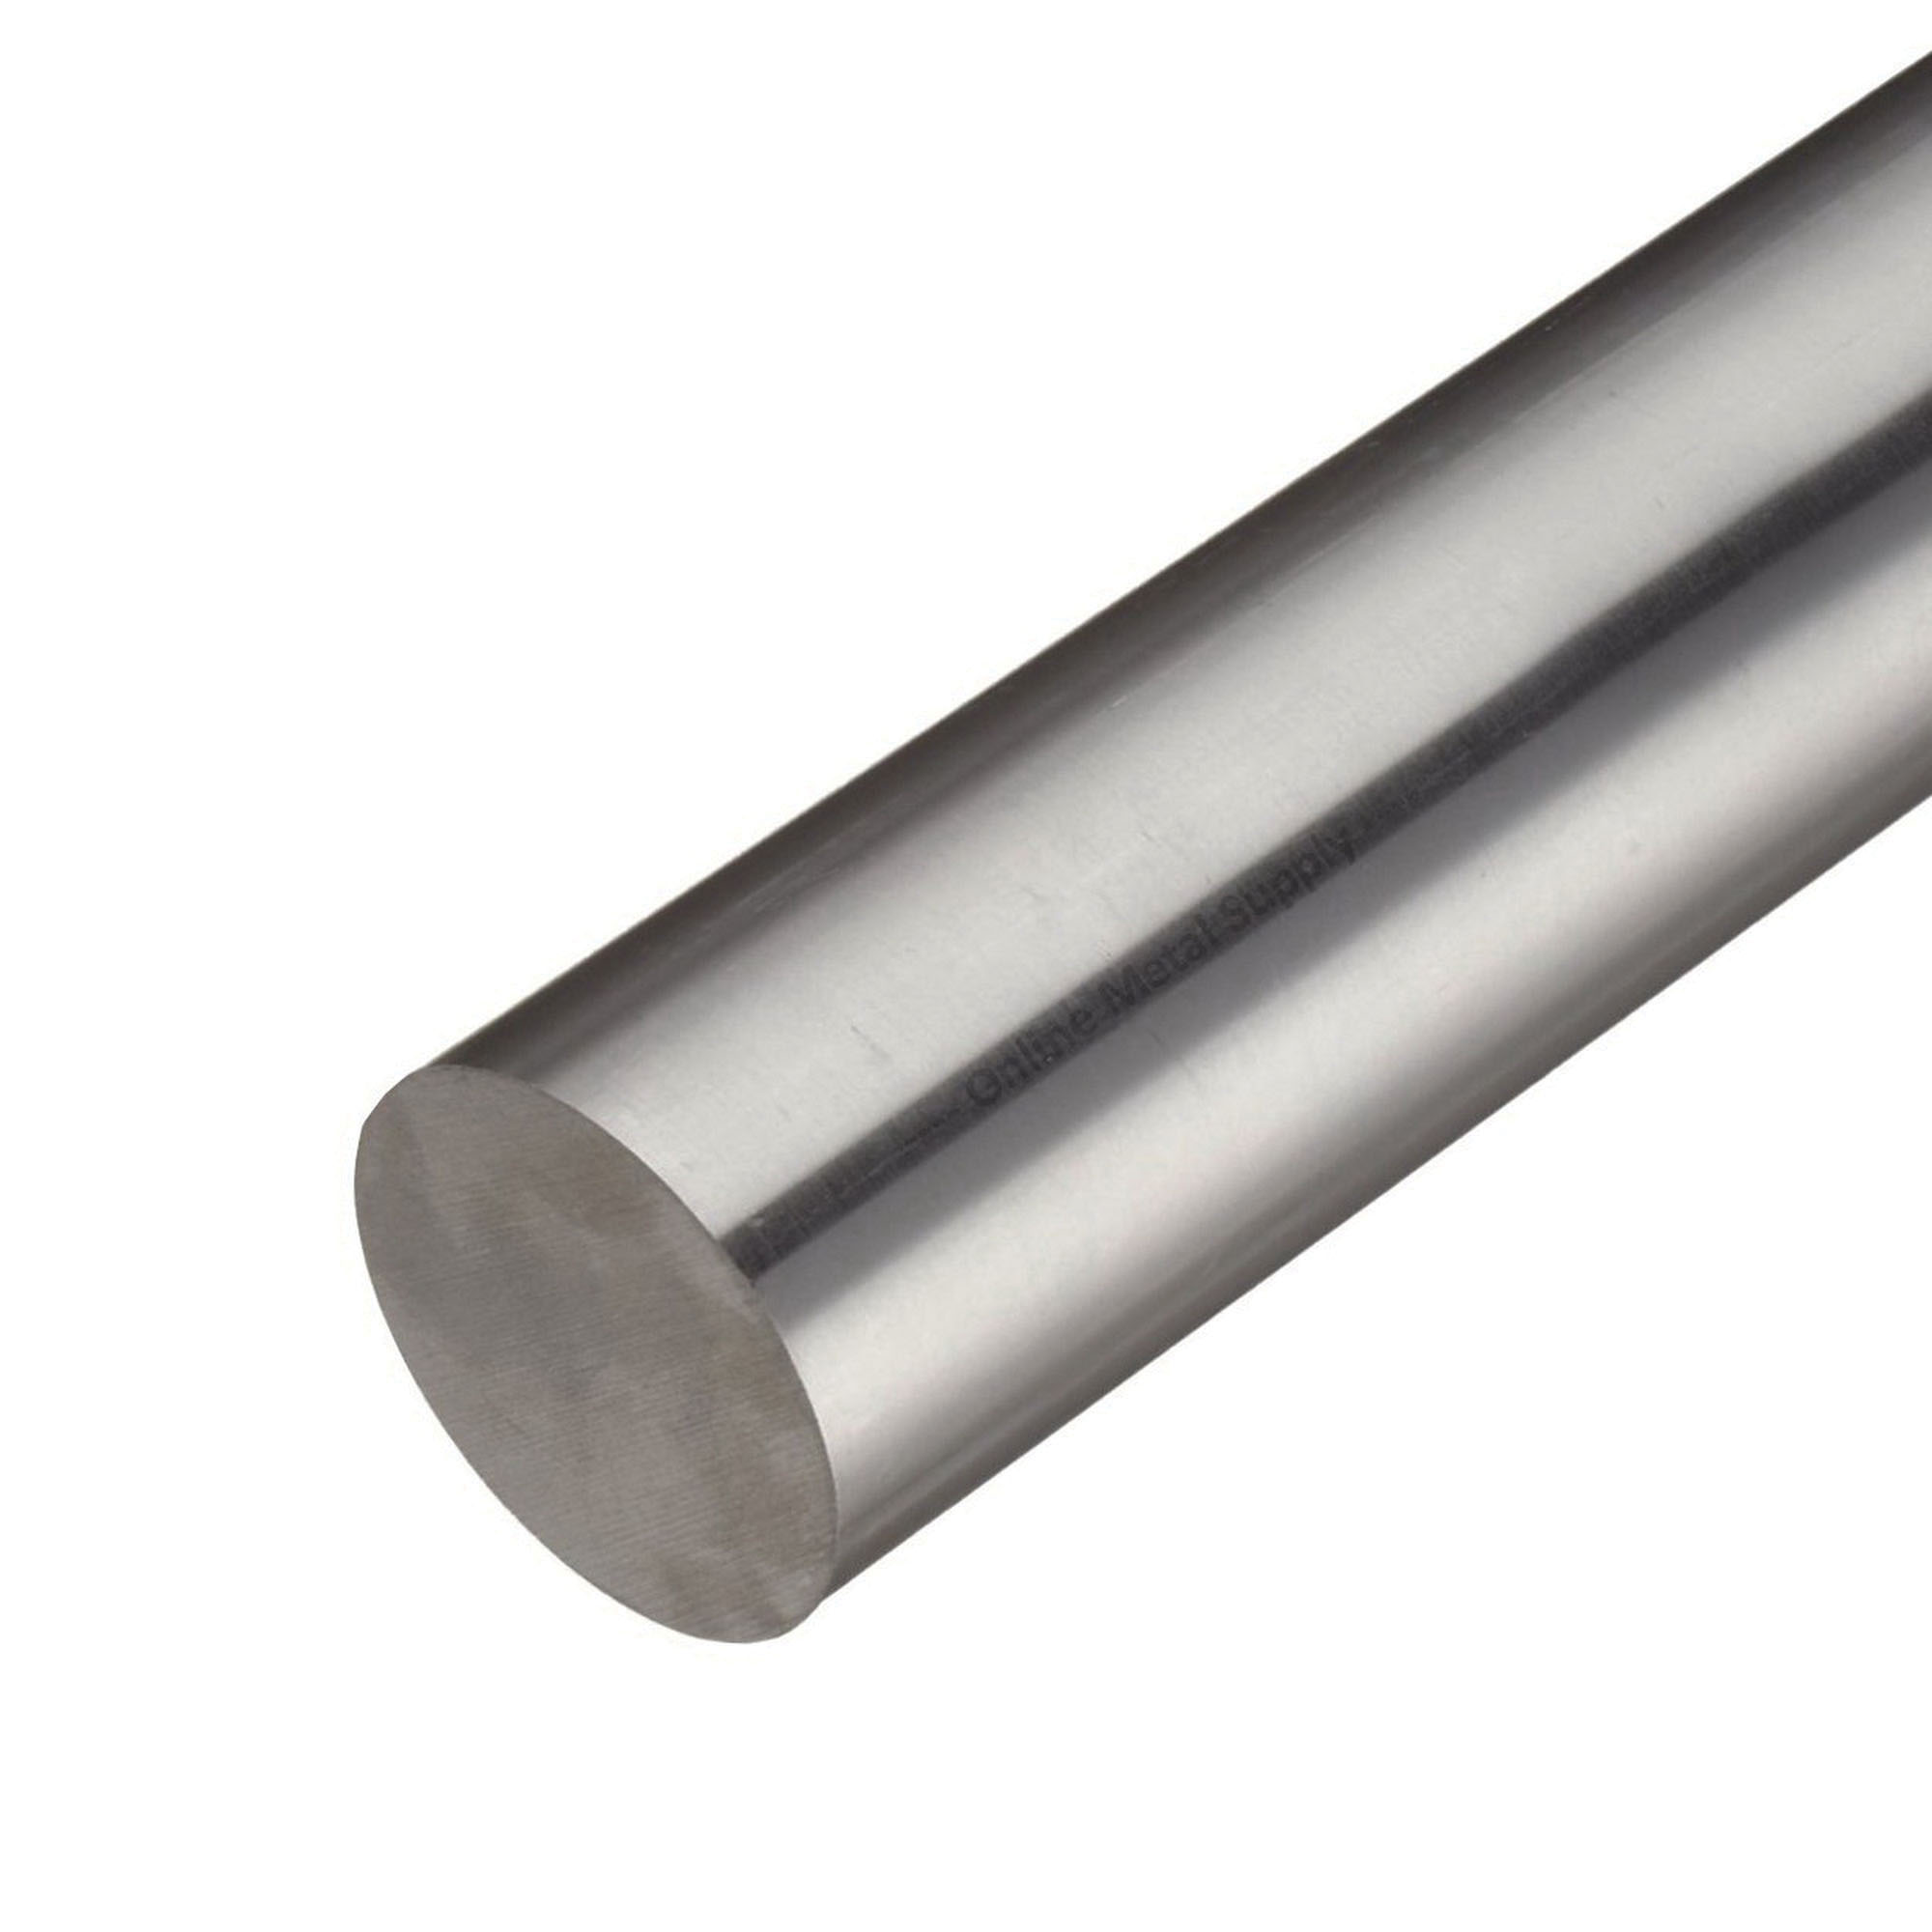 304 Stainless Steel Round Bar, 12 ft L x 1/2 in W